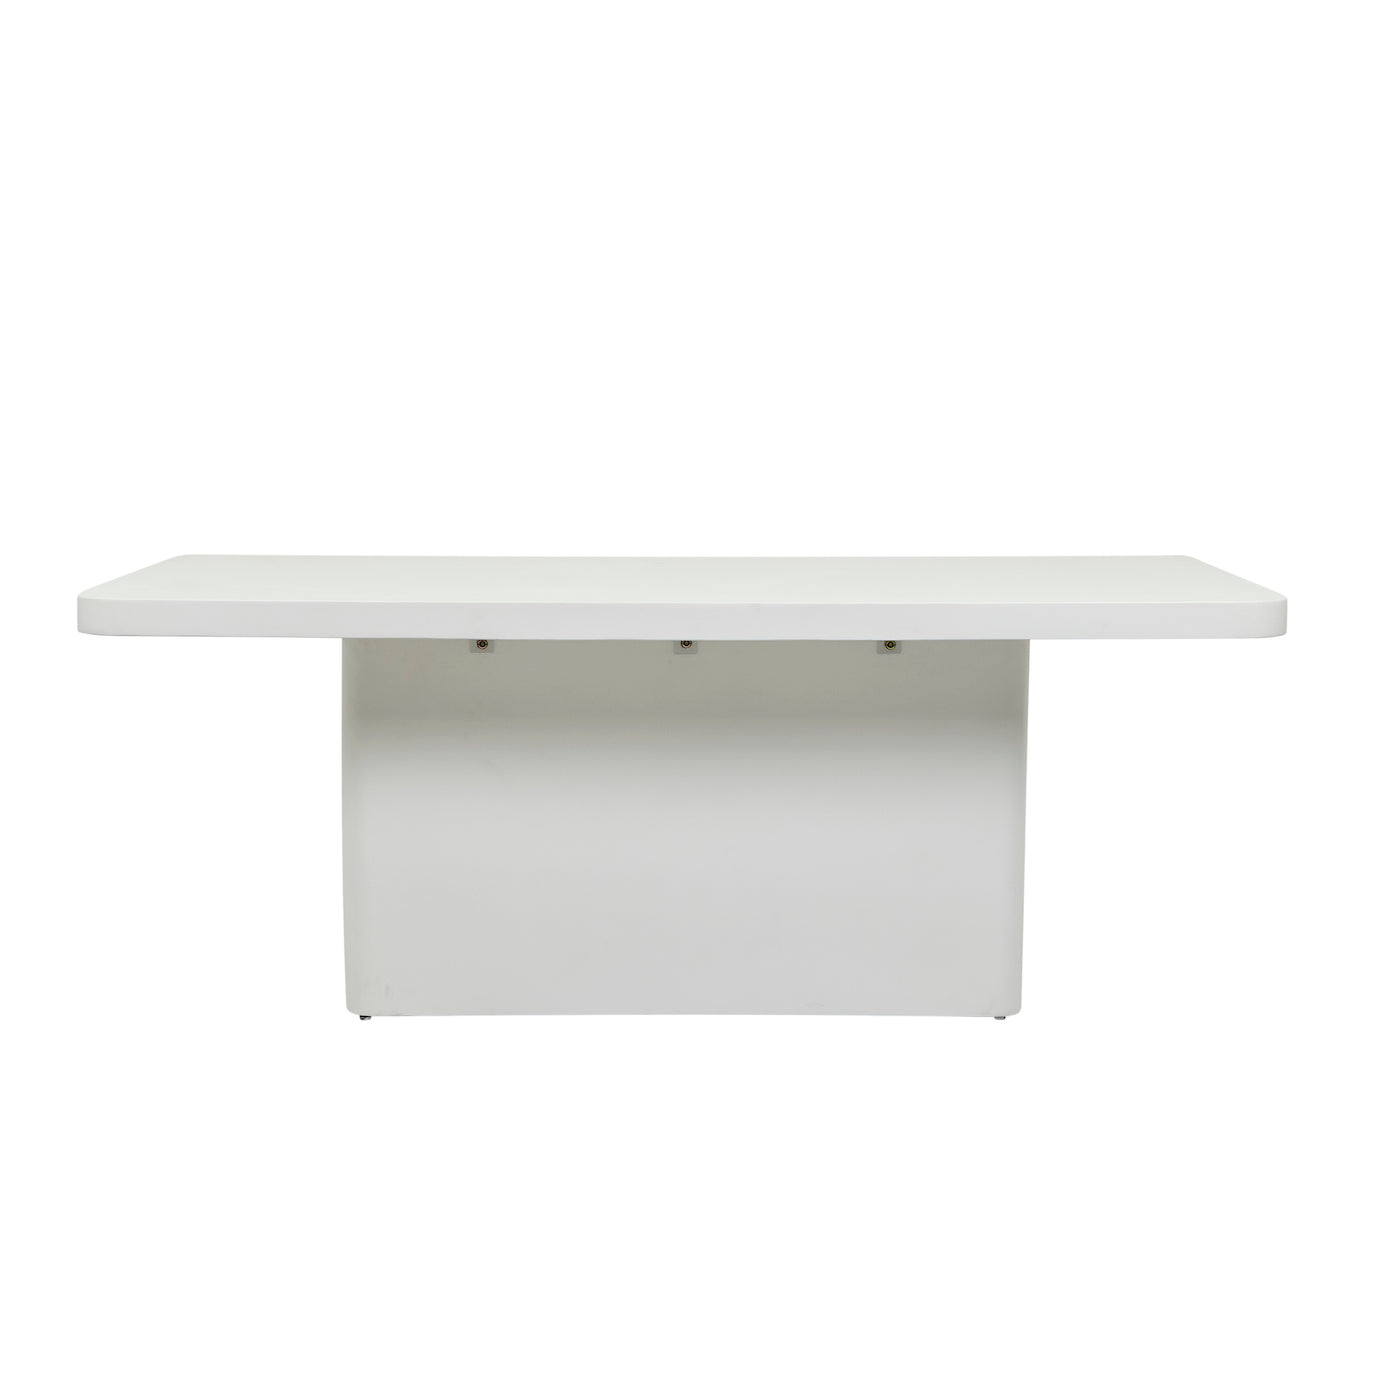 Ossa Cube Patio Dining Table | White